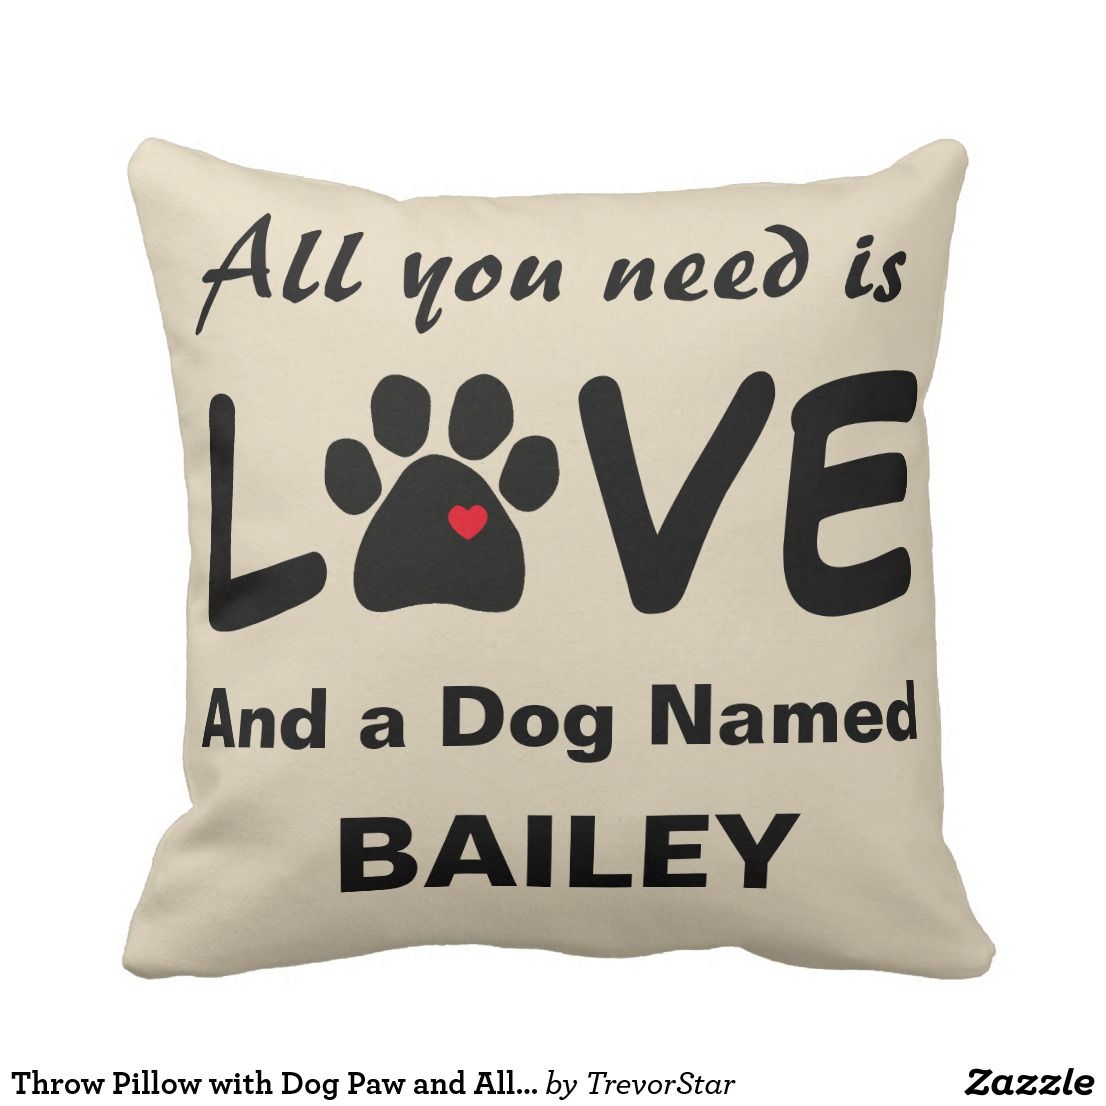 Throw Pillow With Dog Paw And All You Need Is Love Zazzle Com